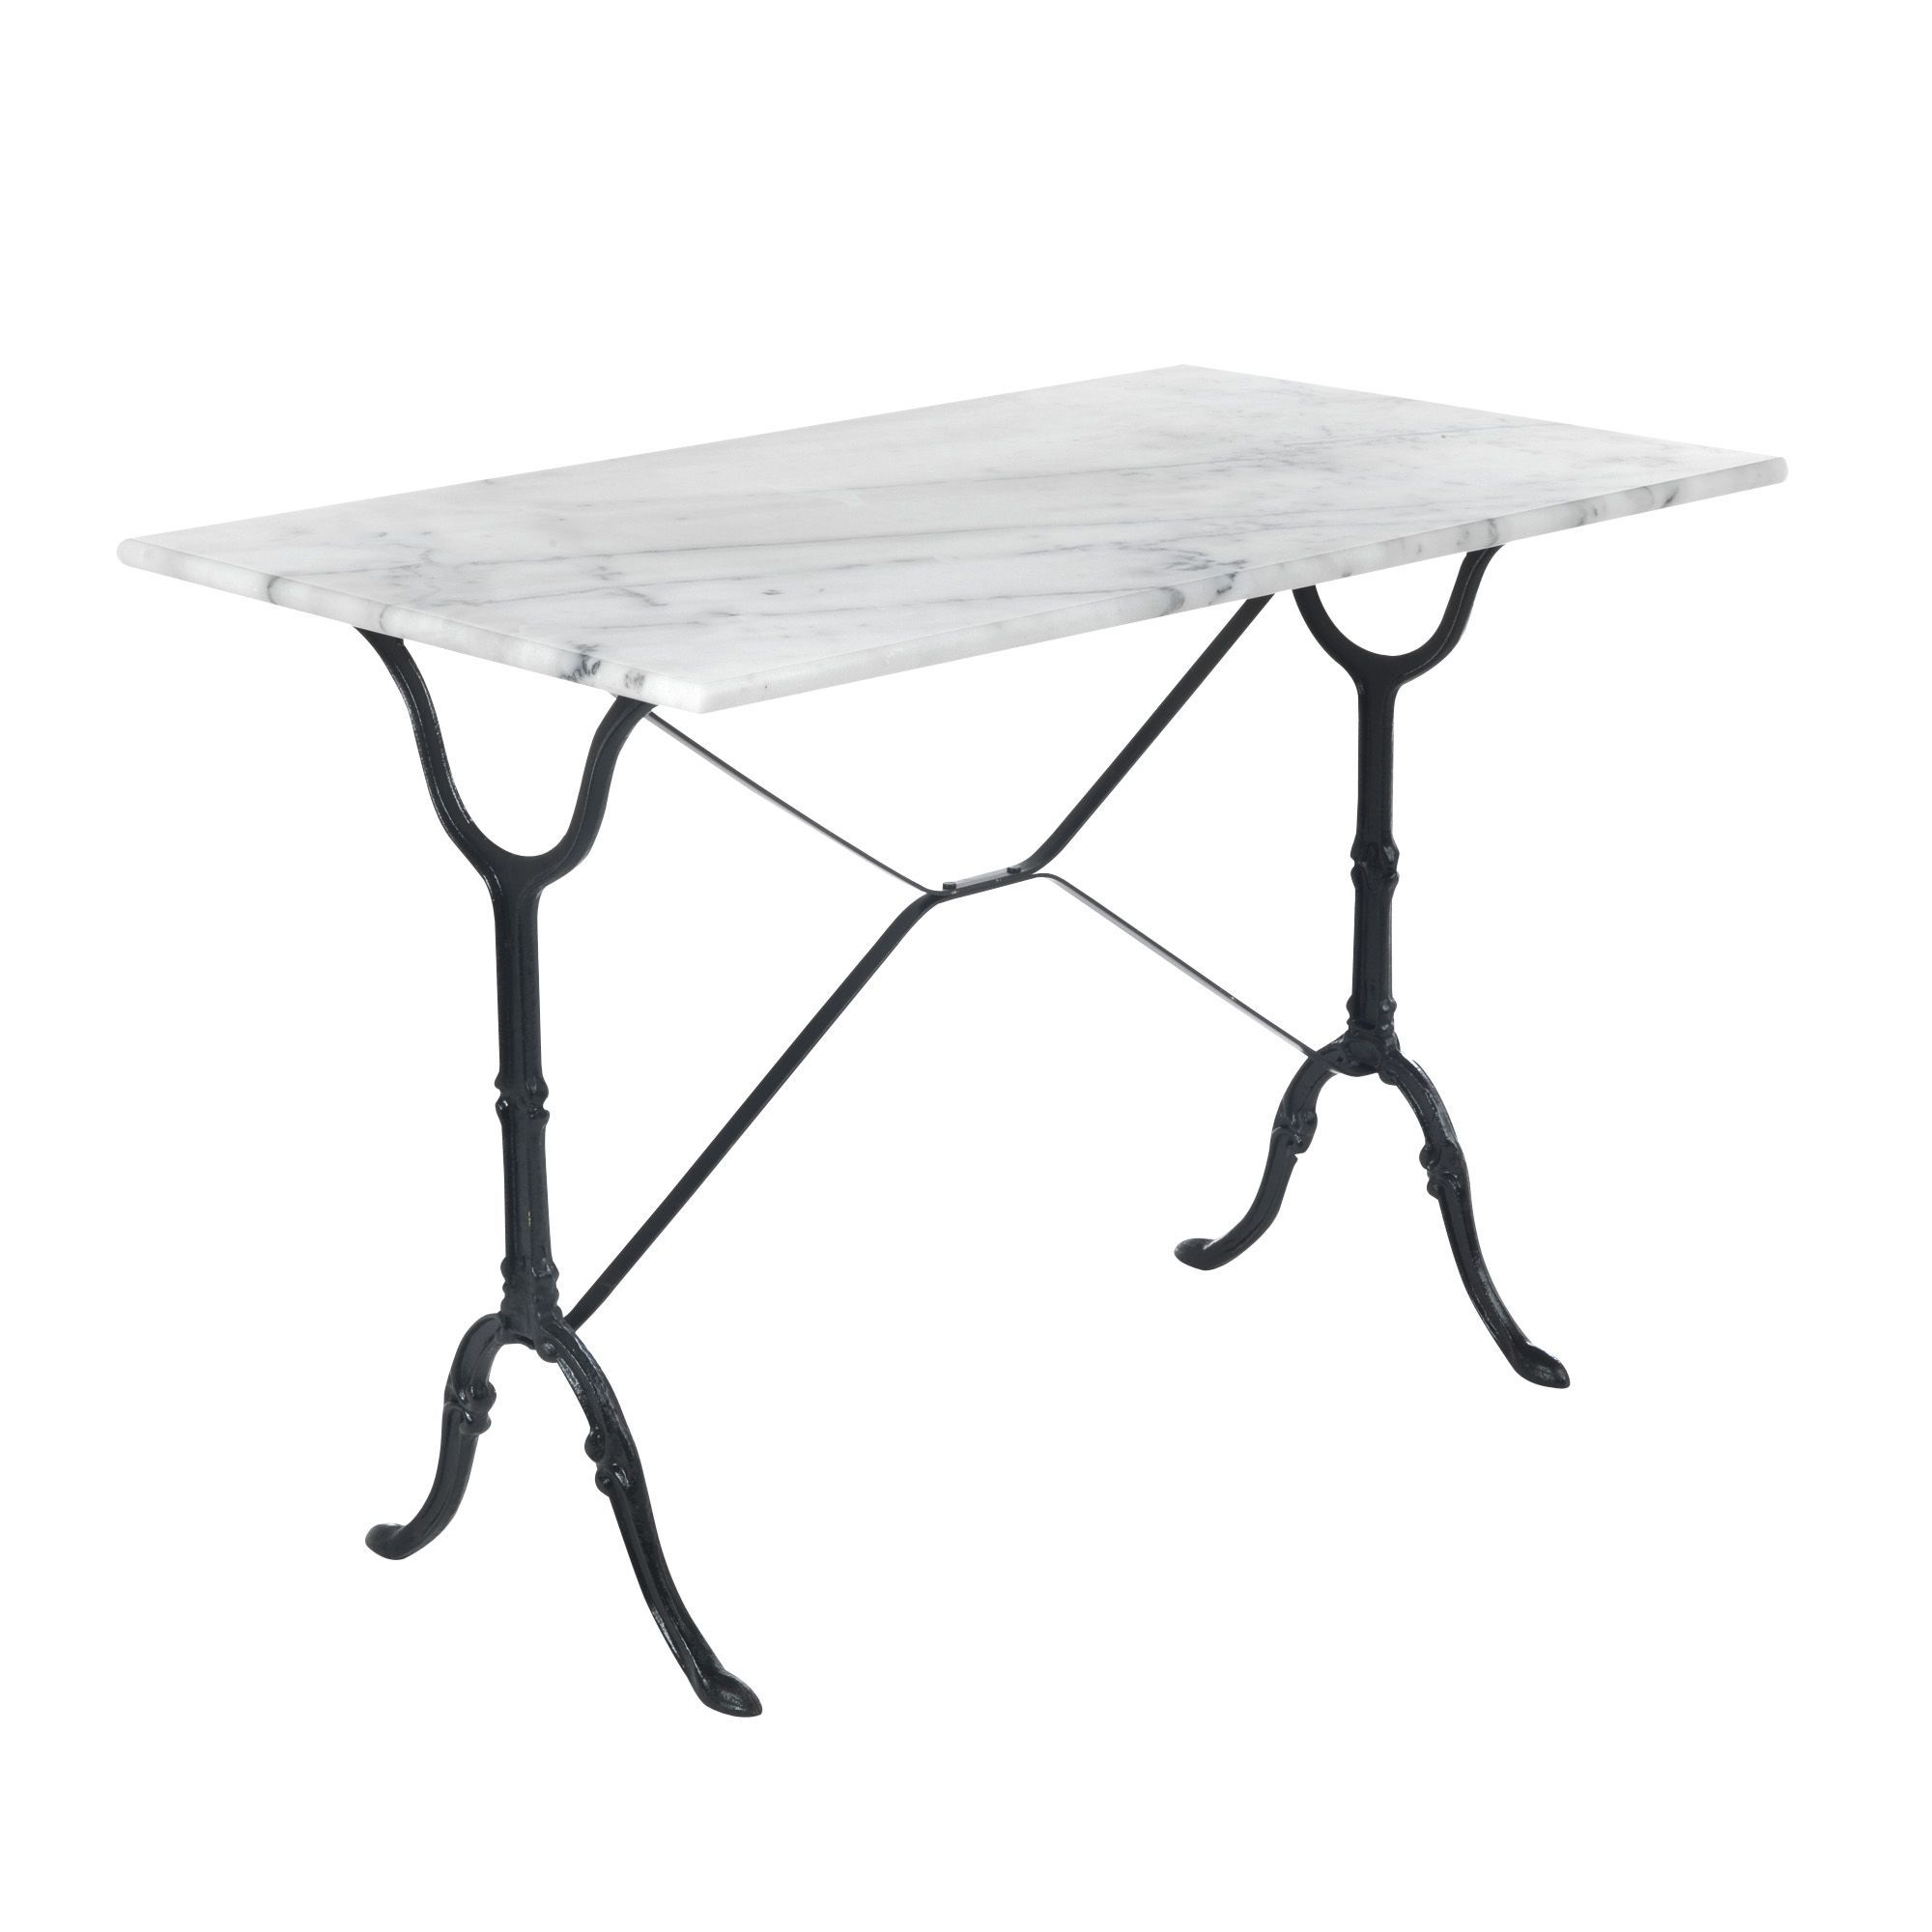 Table rectangulaire avec plateau en marbre blanc noir for Table de cuisine en marbre